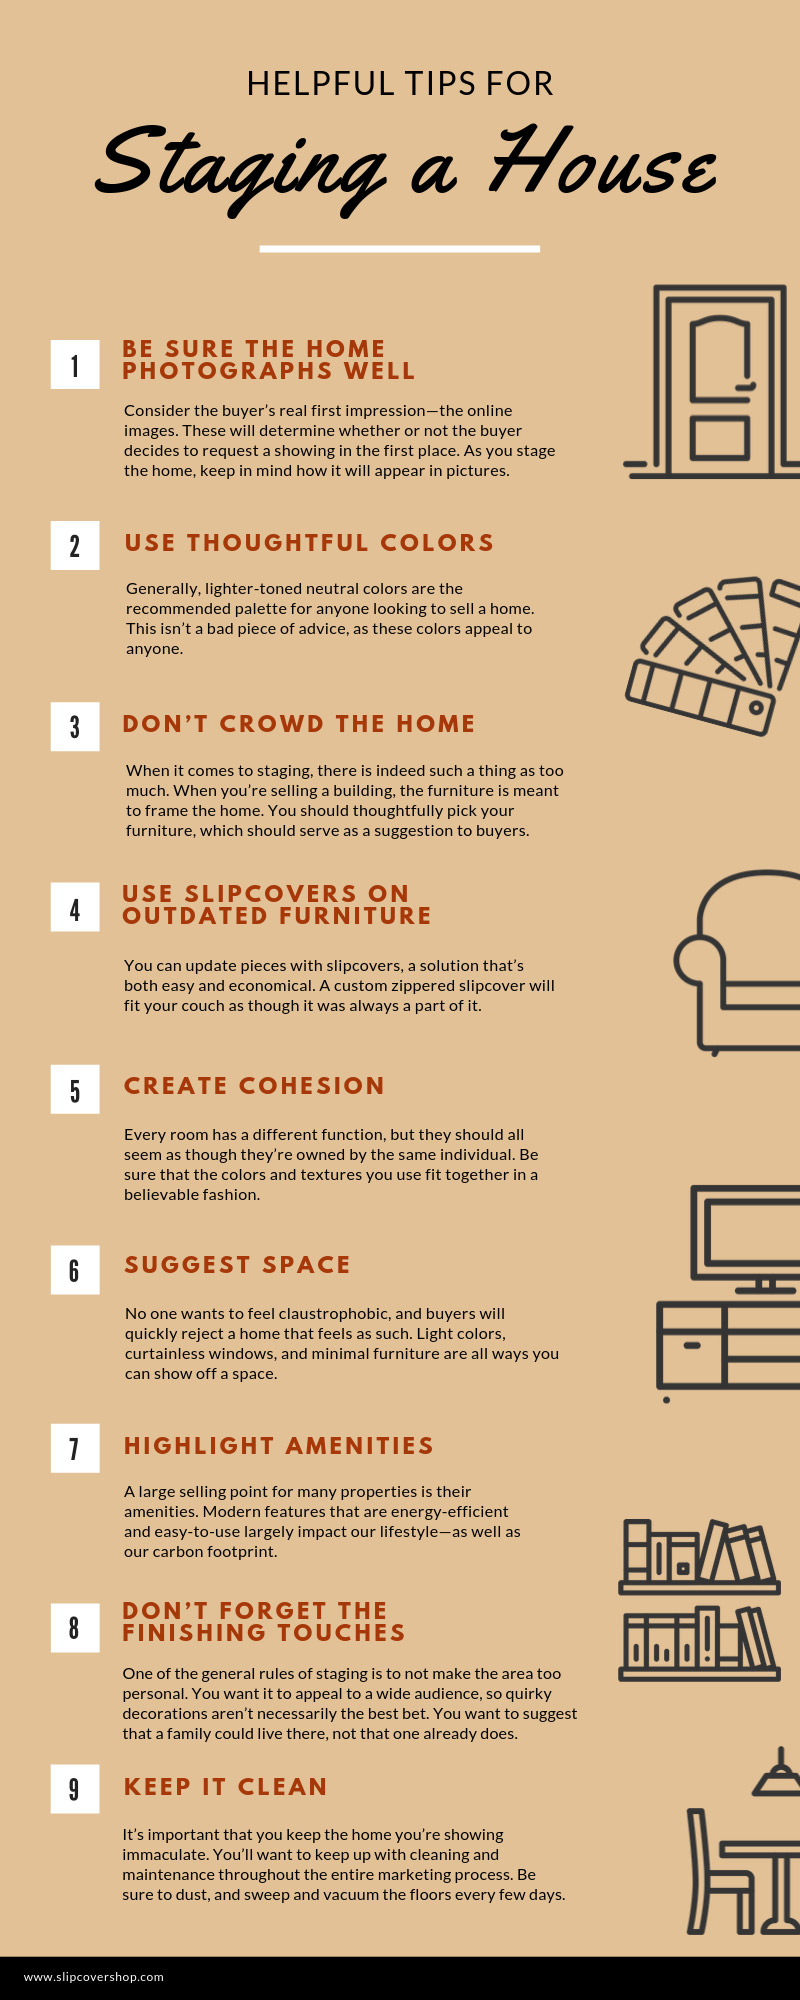 Helpful Tips for Staging a House infographic